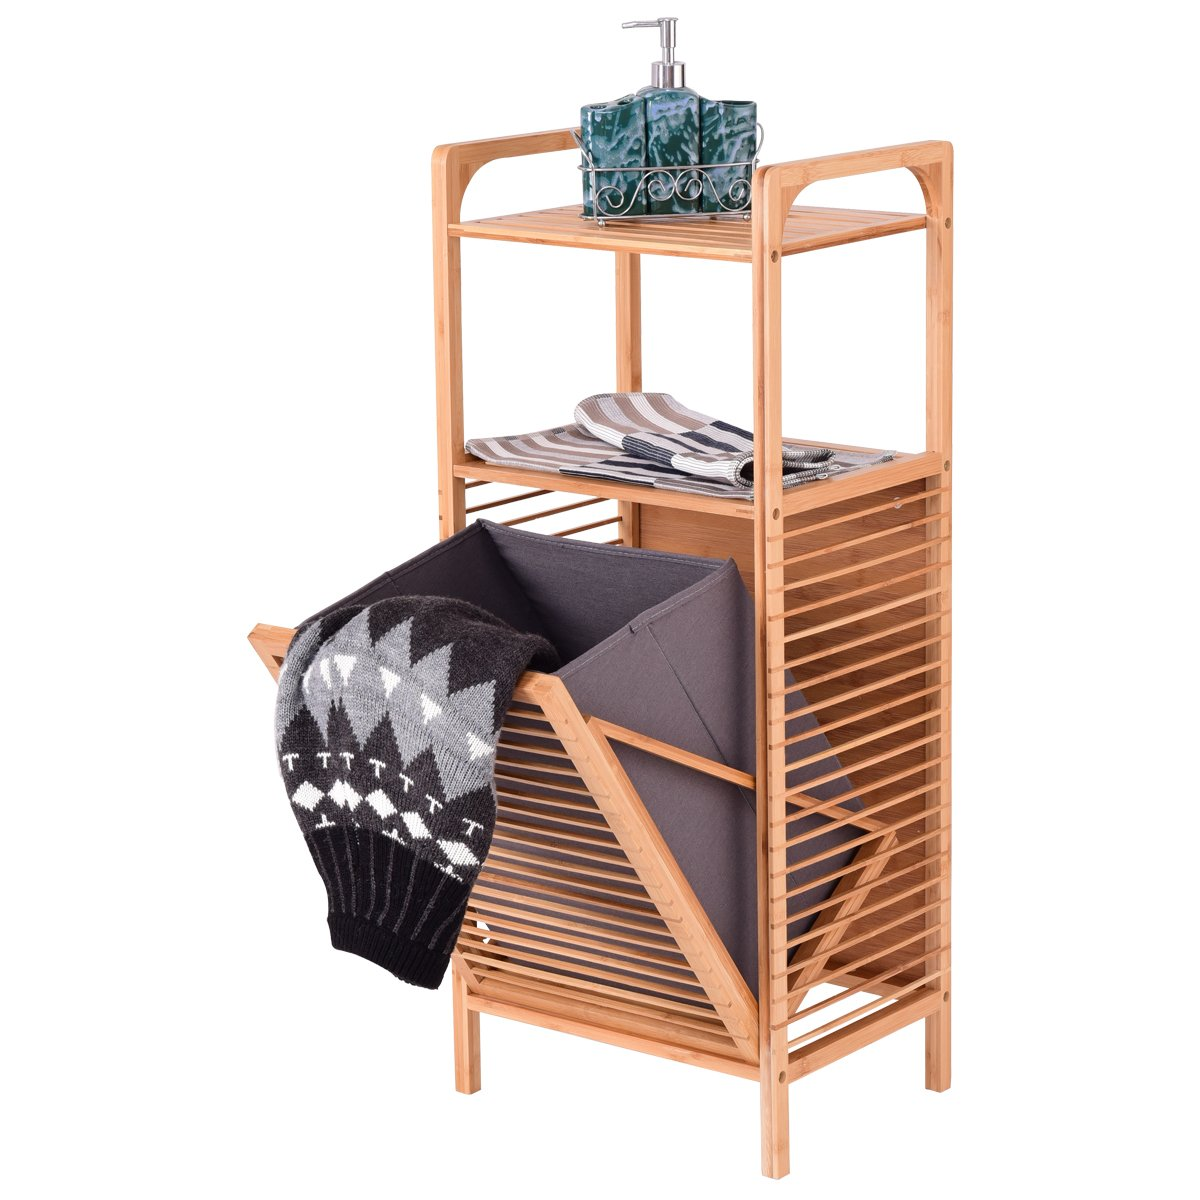 Giantex Tilt-Out Bamboo Laundry Hamper Slat Frame Space Saving Storage with Shelf & Removable Liner, Perfect for Bathrooms & Spas